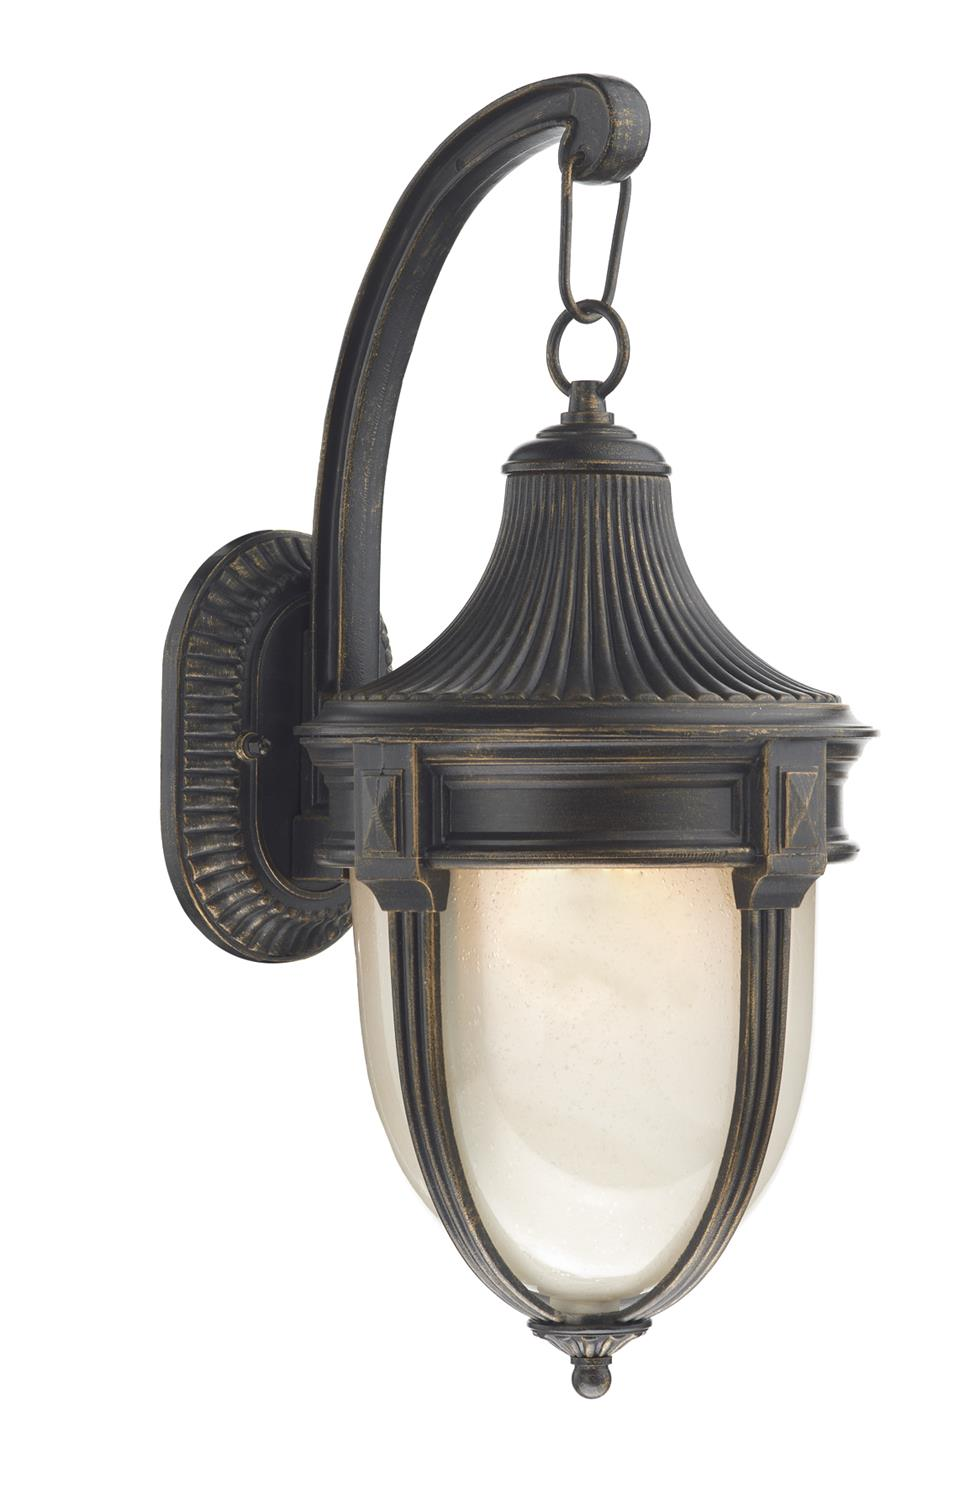 Big Outside Wall Lights : RIC1535 Richmond Large Outdoor Down Wall Light in Black/Gold Lighting Bug Swindon